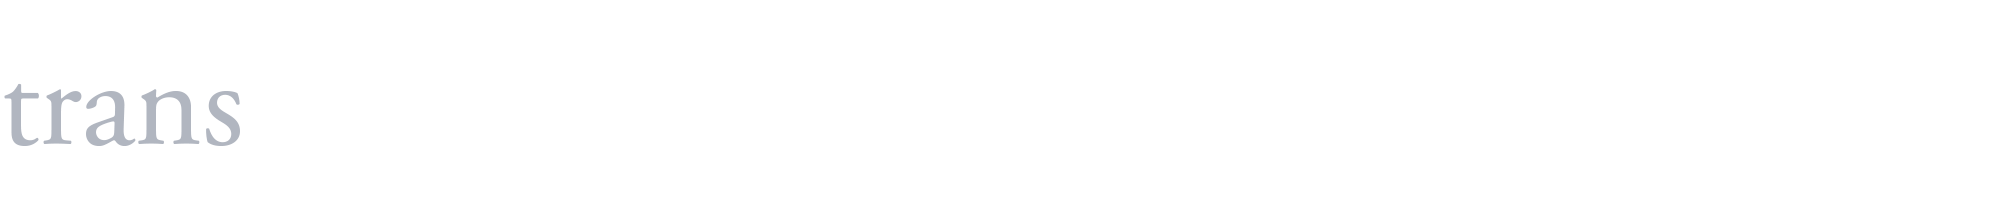 Transtechnology Research